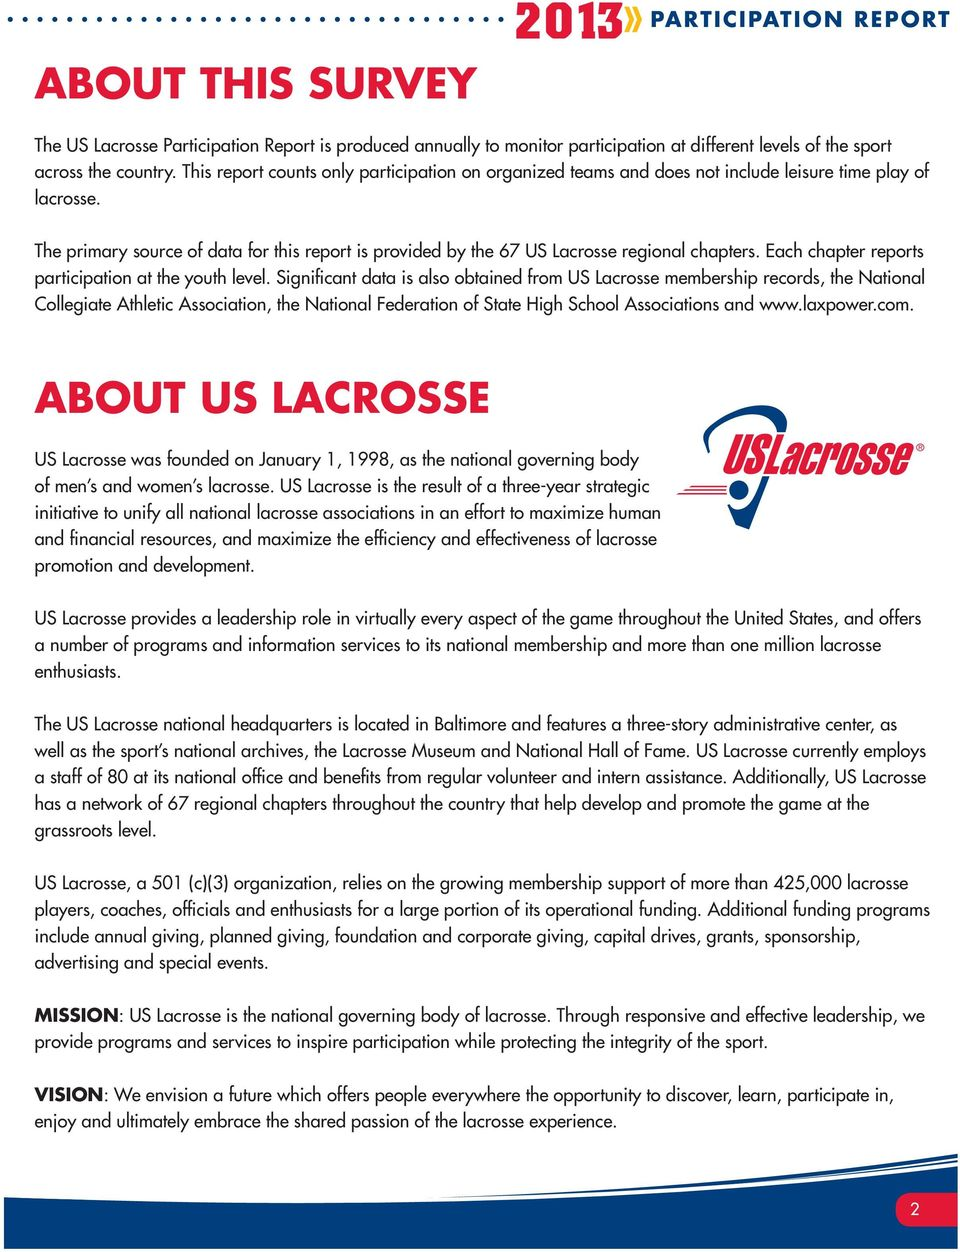 The primary source of data for this report is provided by the 67 US Lacrosse regional chapters. Each chapter reports participation at the youth level.